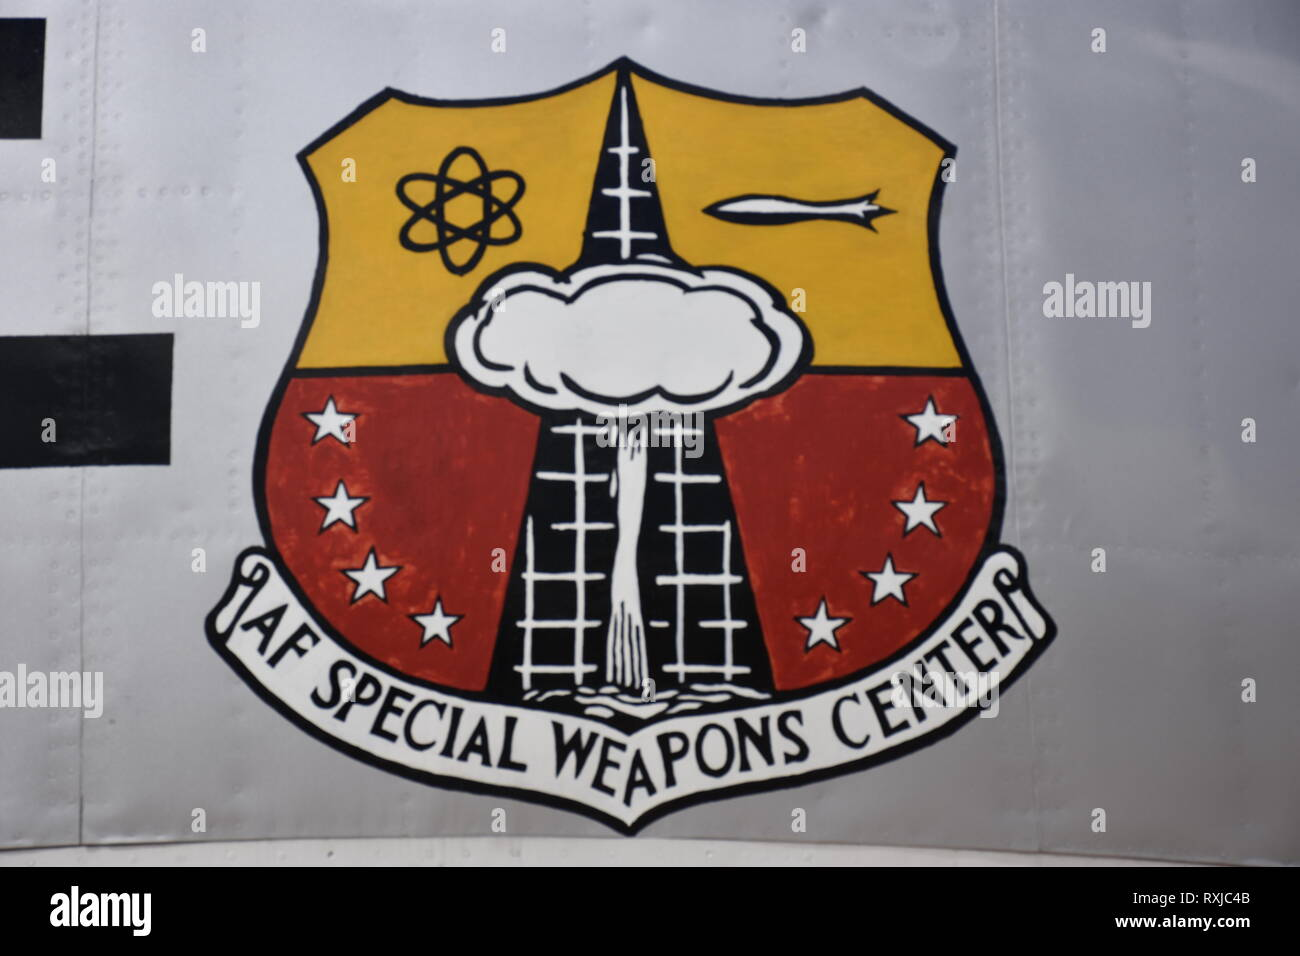 Air Force Special Weapons Center Insignia - Stock Image